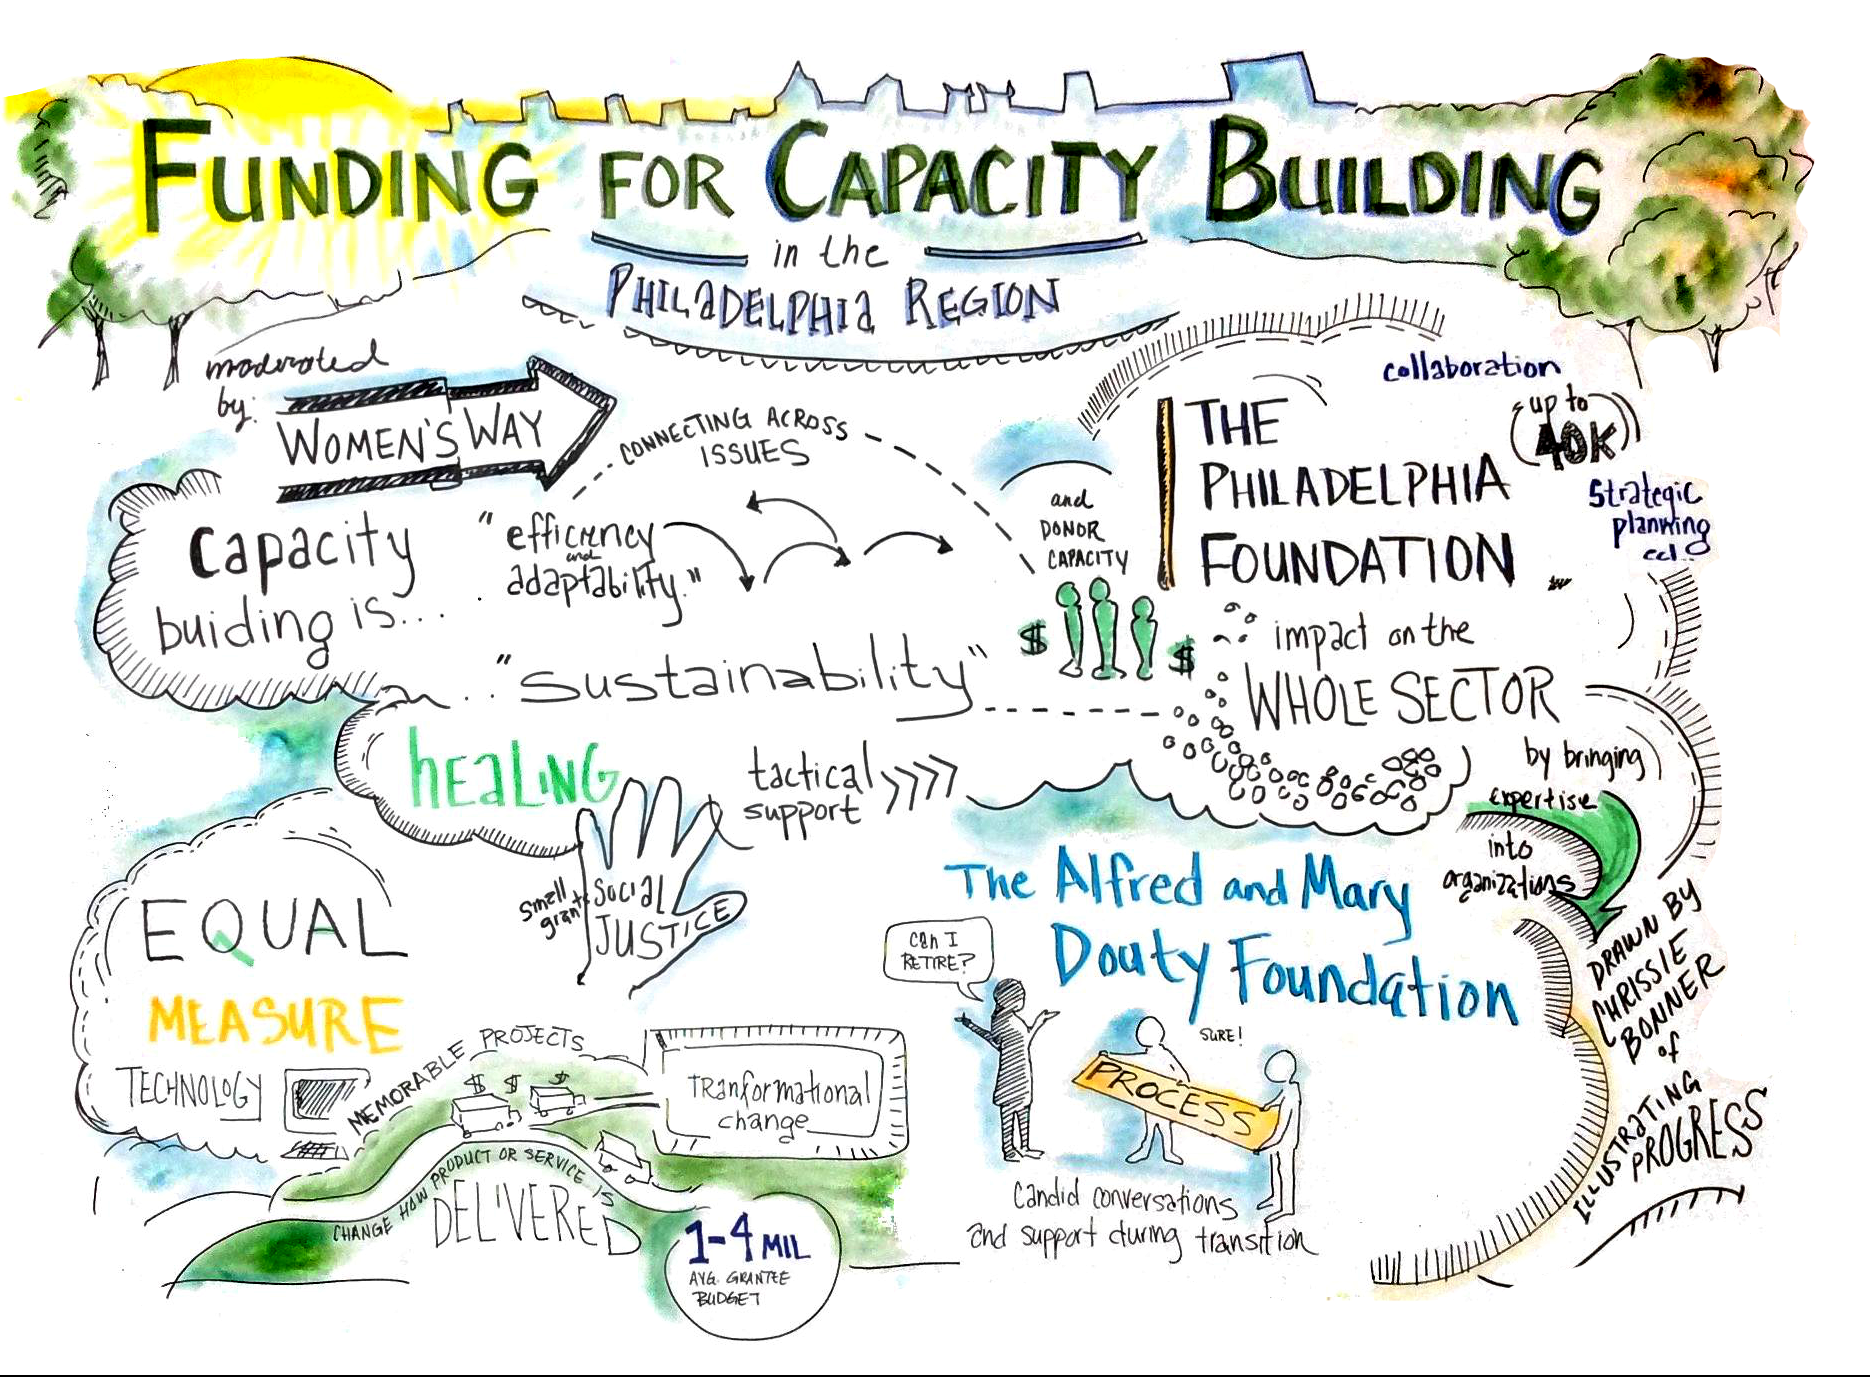 """Funding for Capacity Building in the Philadelphia Region. moderated by Women's Way: capacity building is... """"efficiency and adaptability"""", """"sustainability"""", connecting across issues, healing, tactical support. The Philadelphia Foundation: and donor capacity, collaboration, strategic planning etc., impact on the whole sector by bringing expertise into organizations (up to 40K). Equal Measure Technology: small grant, social justice, memorable projects, tranformational change, change how service or product is delivered (1-4 mil avg grantee budget). The Alfred and Mary Douty Foundation: process, candid conversations and support during transition. Drawn by Chrissie Bonner of Illustrating Progress."""